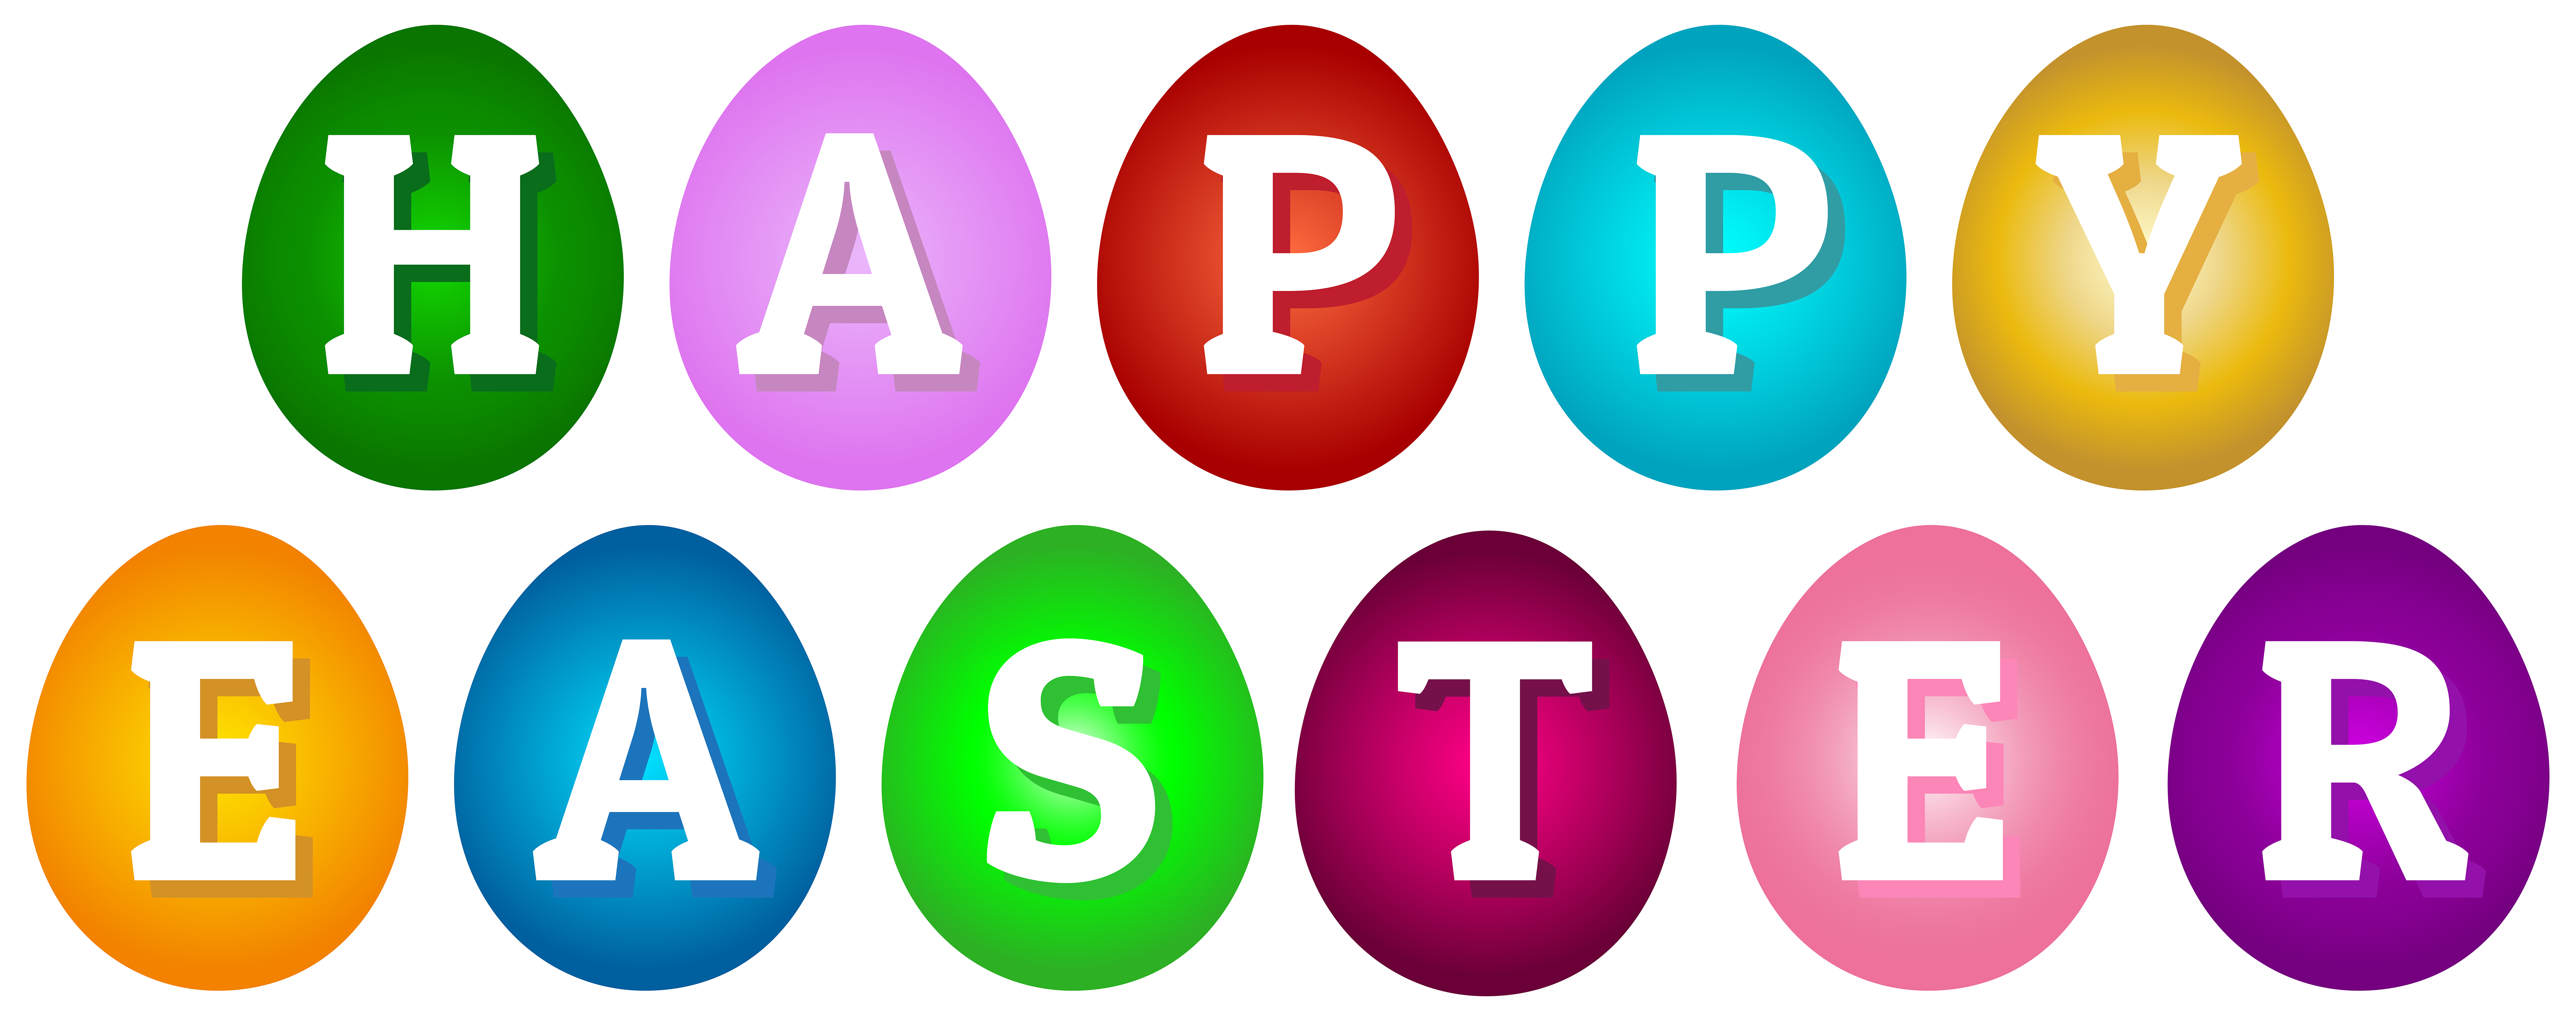 Happy Easter Eggs Clip Art PNG Image.